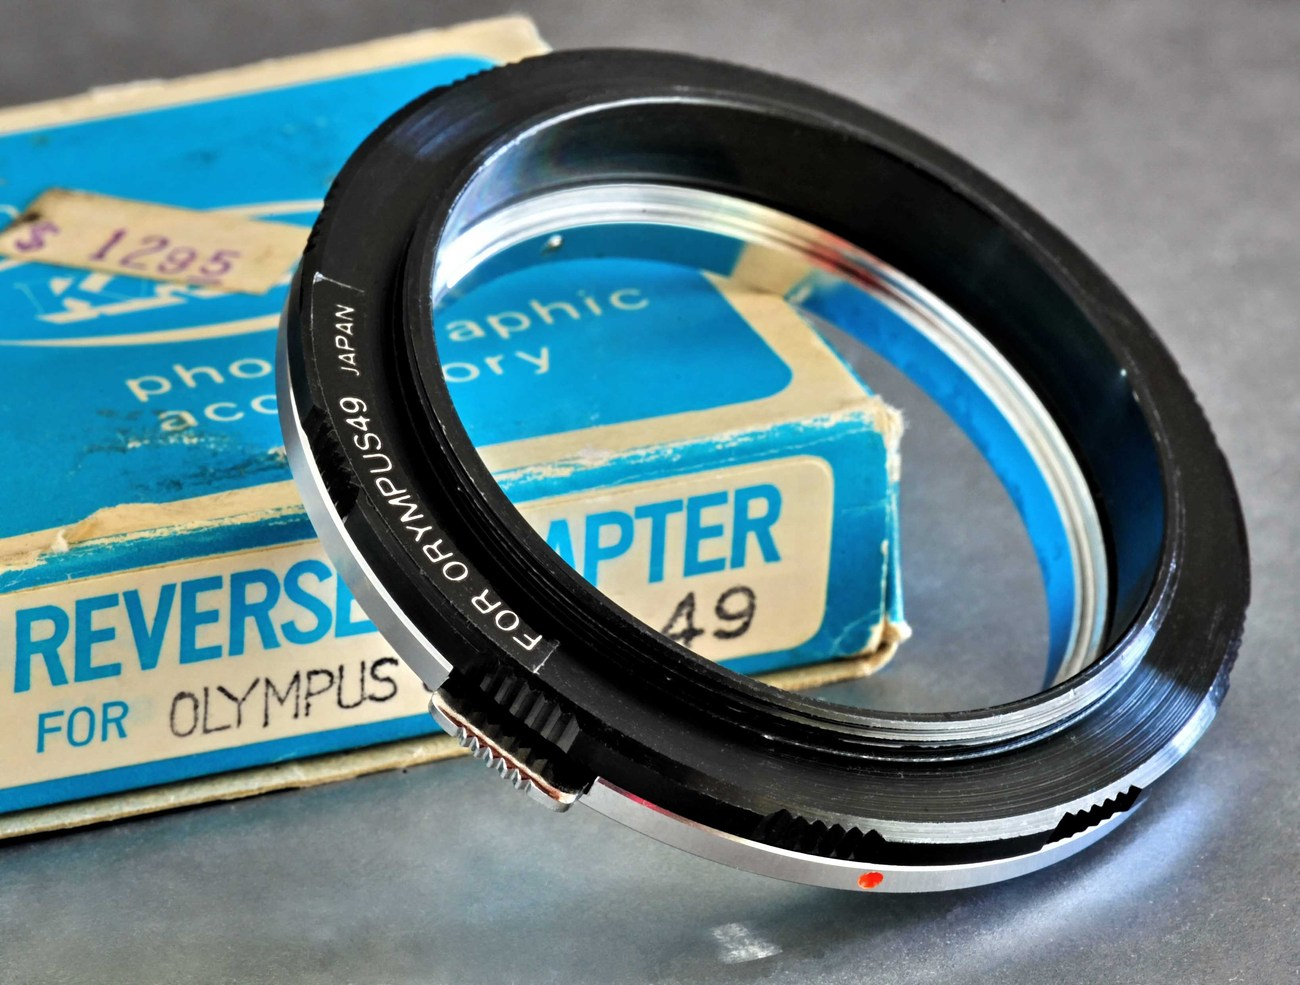 Olympus OM Lens Reverse Adapter NOS 50mm f/1.8 Lens for Macro Photography Minty